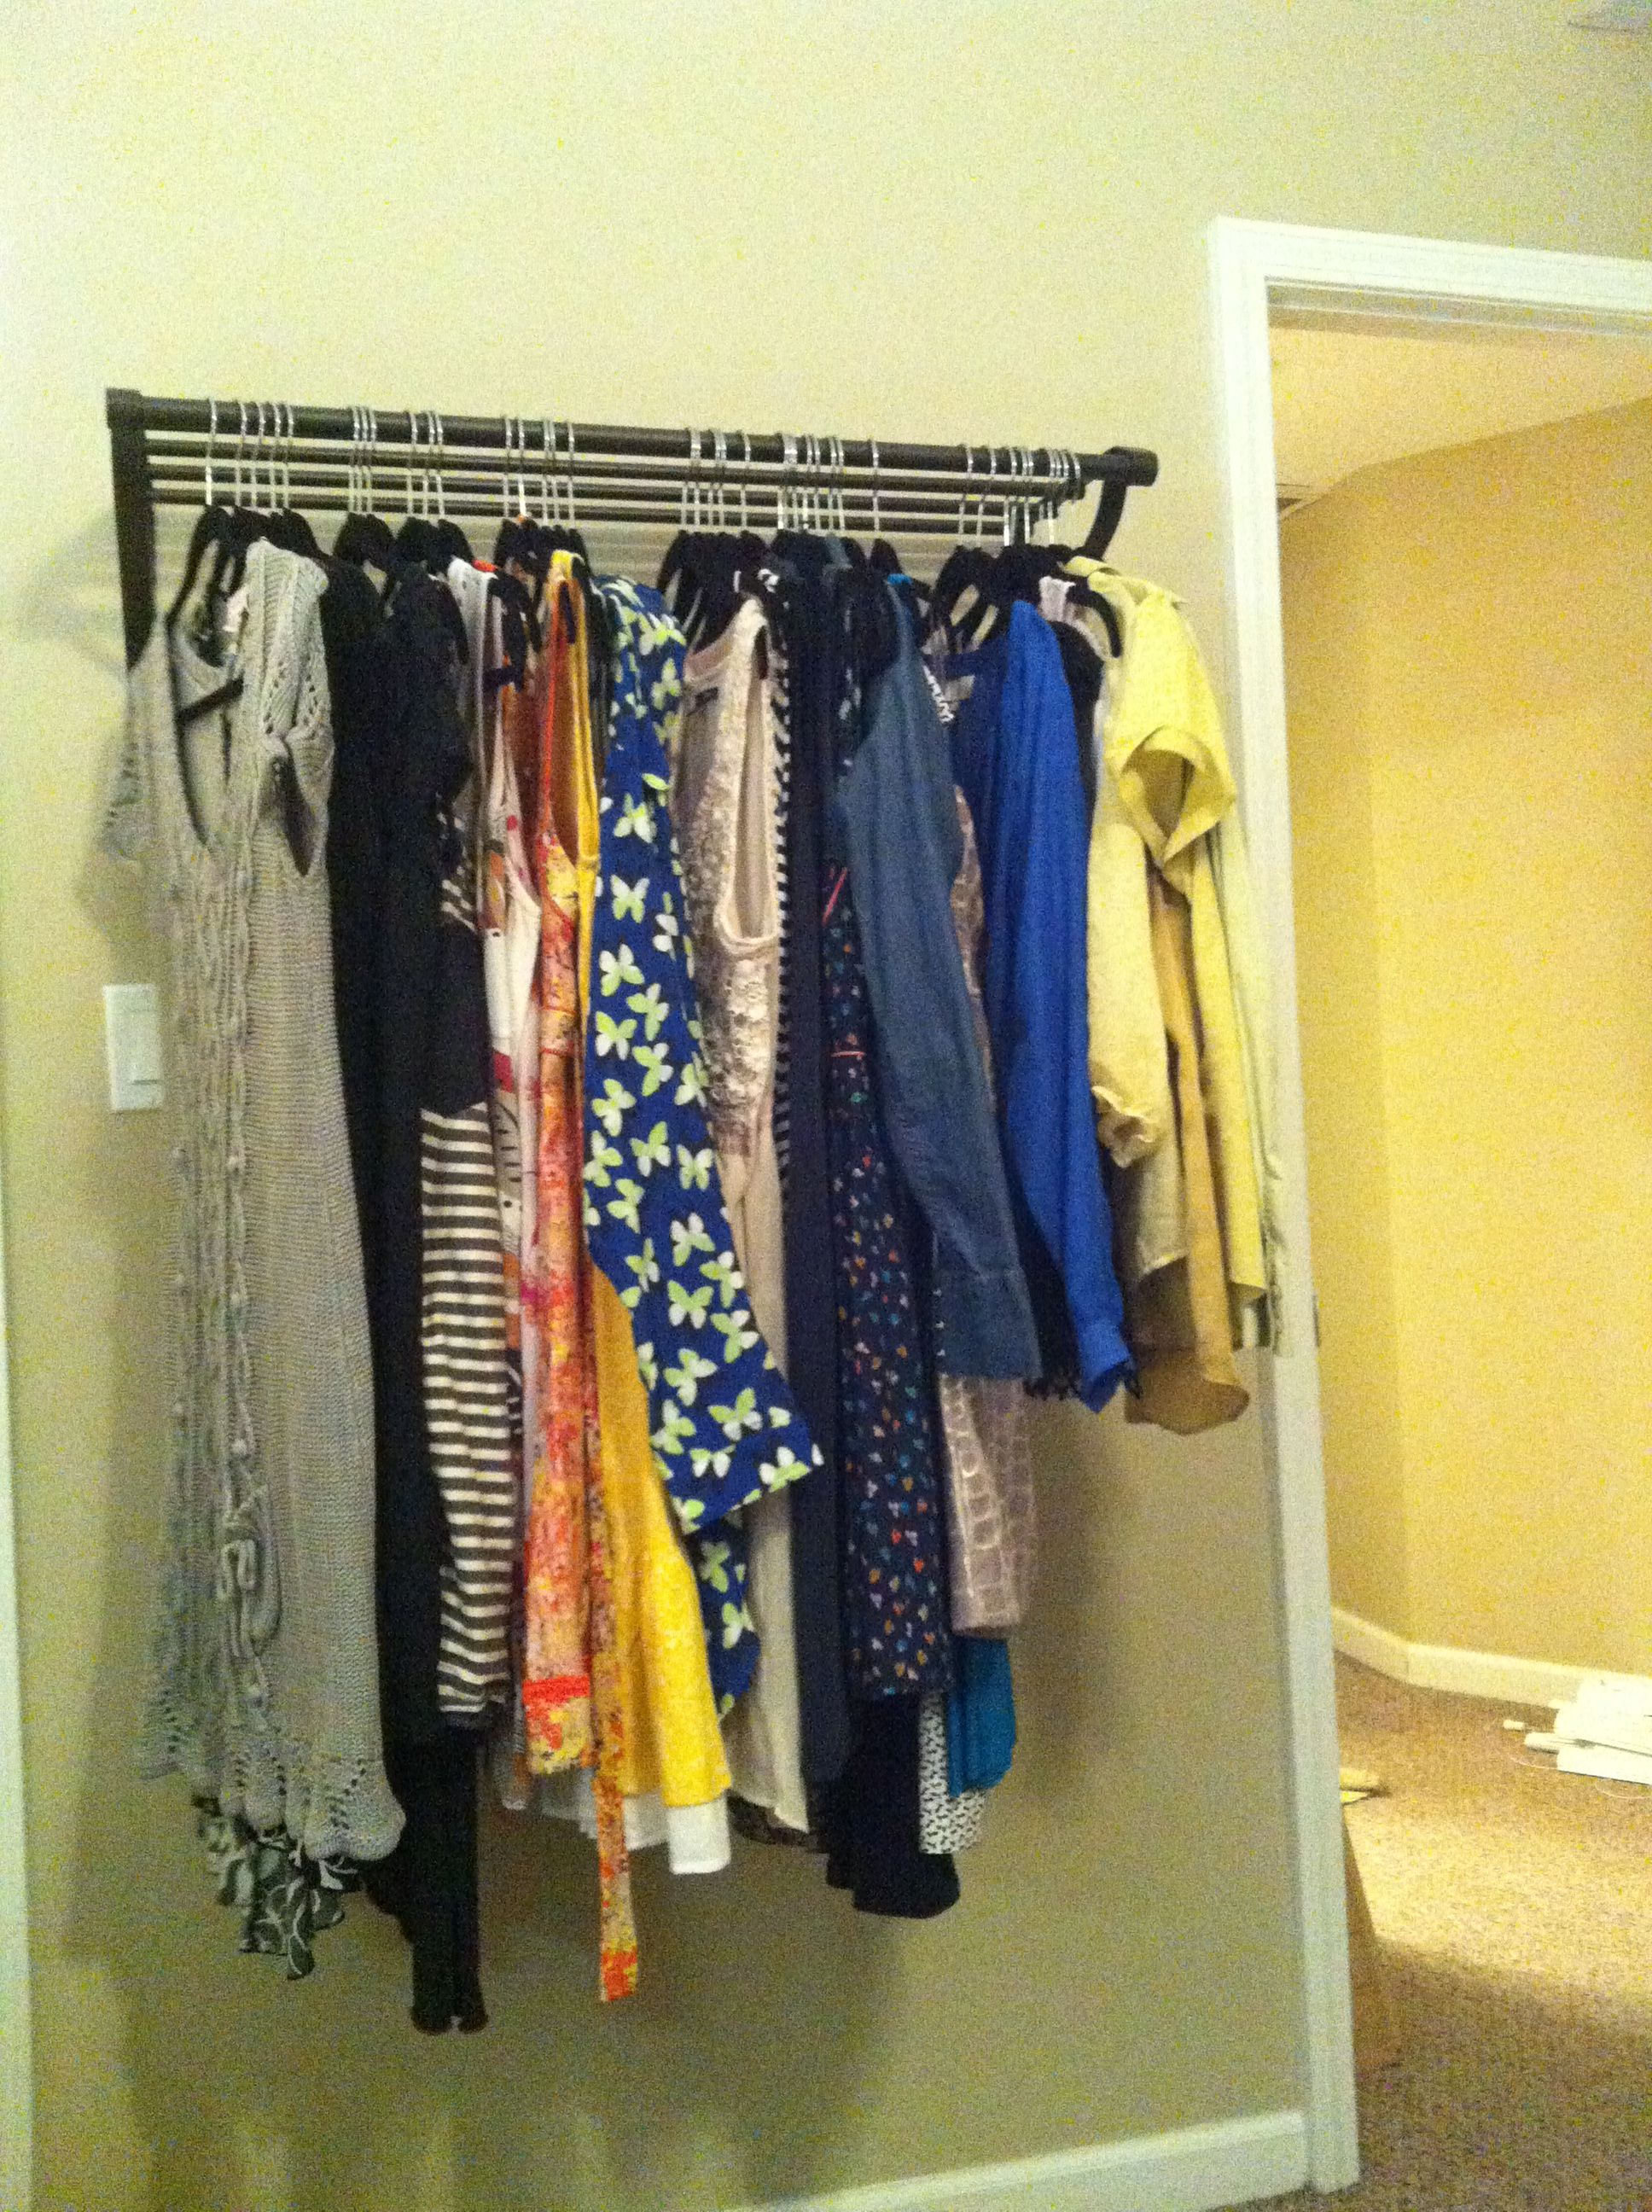 No closet solution for 20 decorating diy bedroom - Room with no closet ...